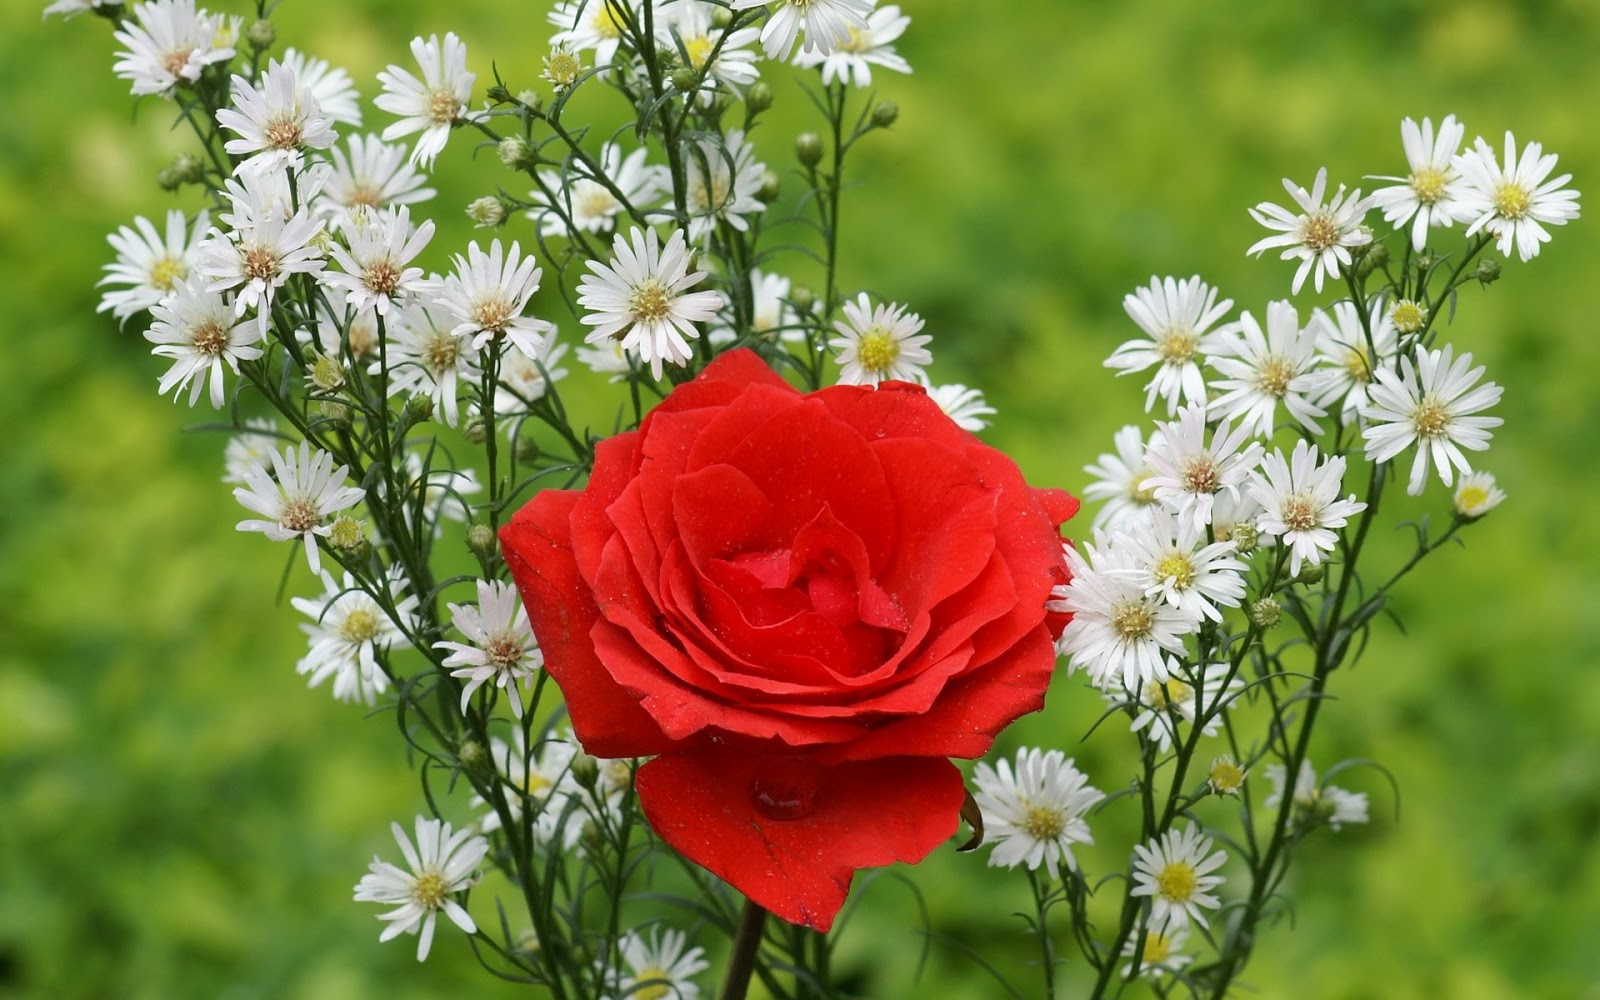 Beautiful red rose flowers wallpapers entertainment only - Red rose flower hd images ...